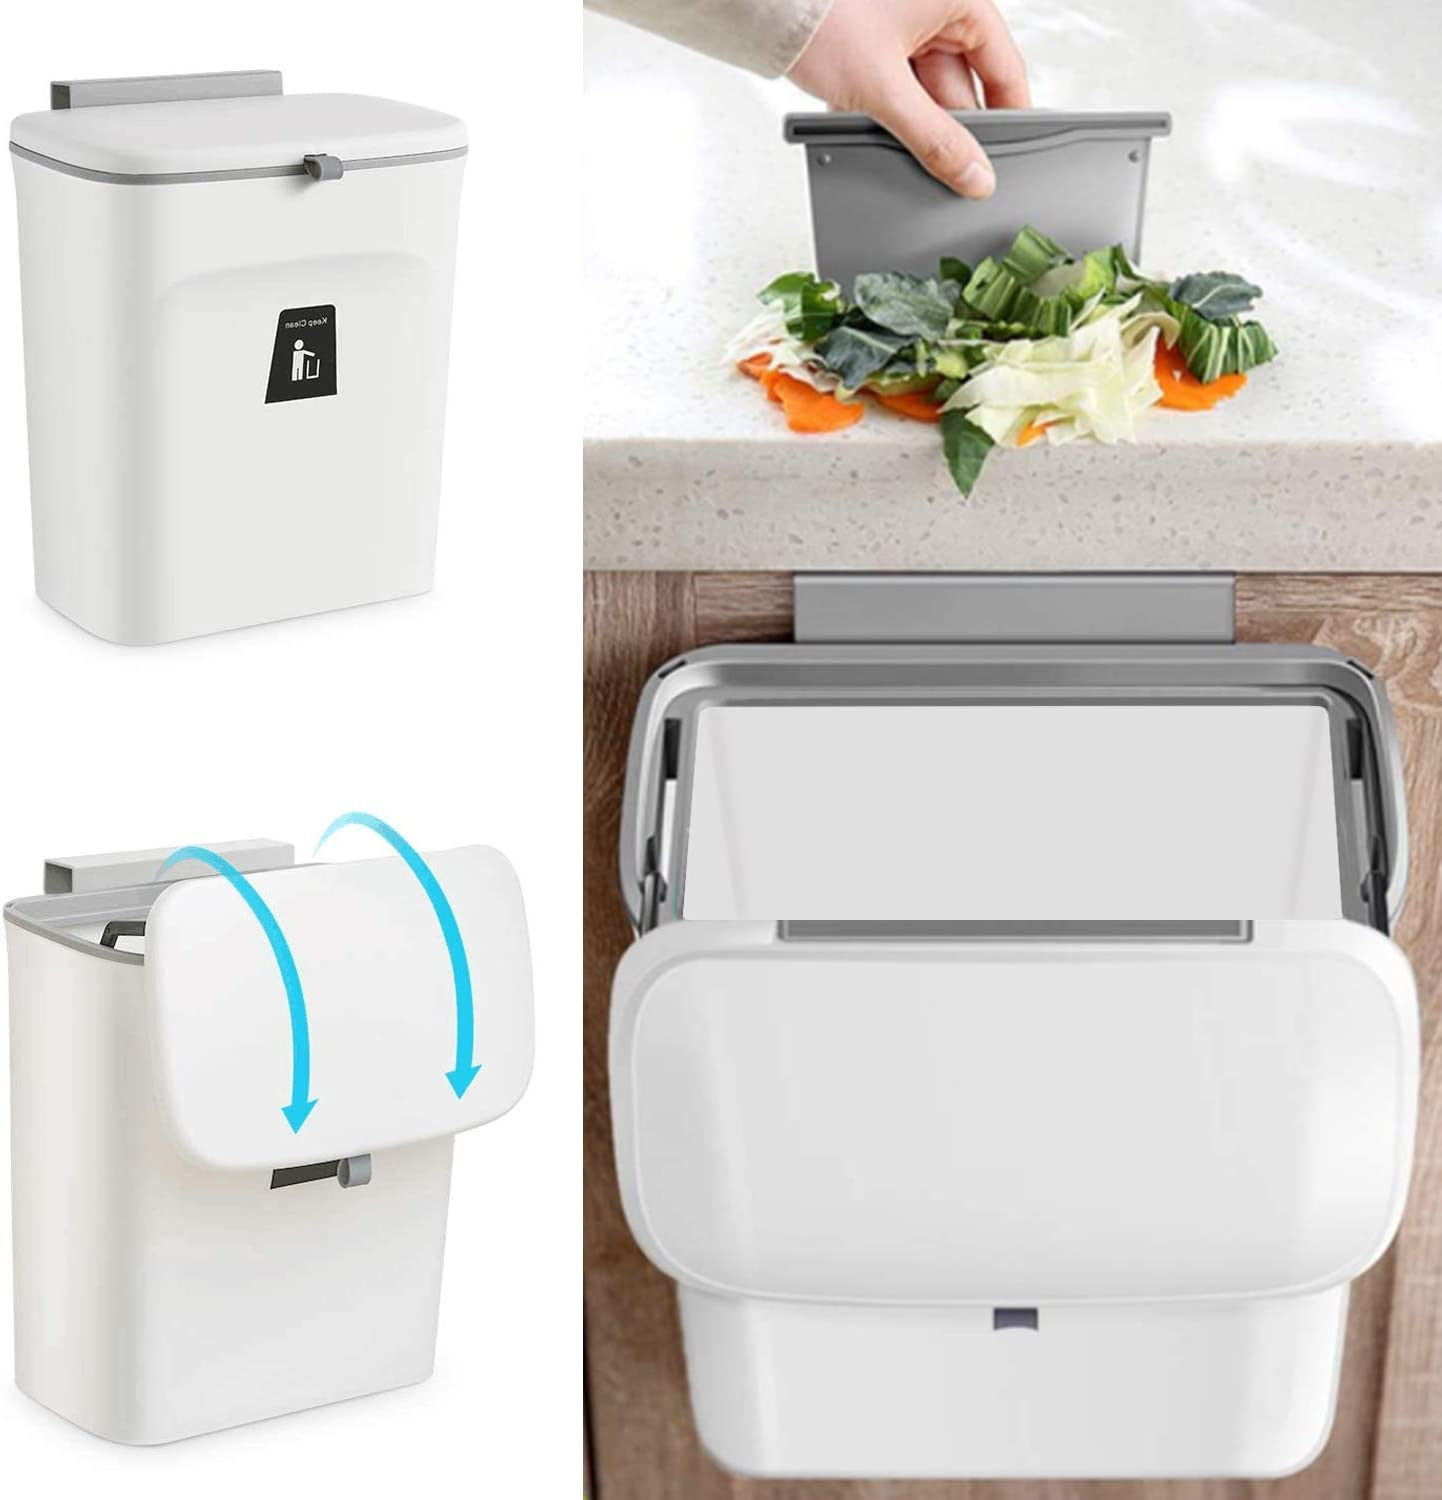 White Wall-Mounted Counter Small Trash Can with Lid for Cupboard,Bedroom,Office,Camping.Mountable Indoor Compost Bucket Aurora 2.4 Gal Hanging Kitchen Compost Bin for Counter Top or Under Sink I